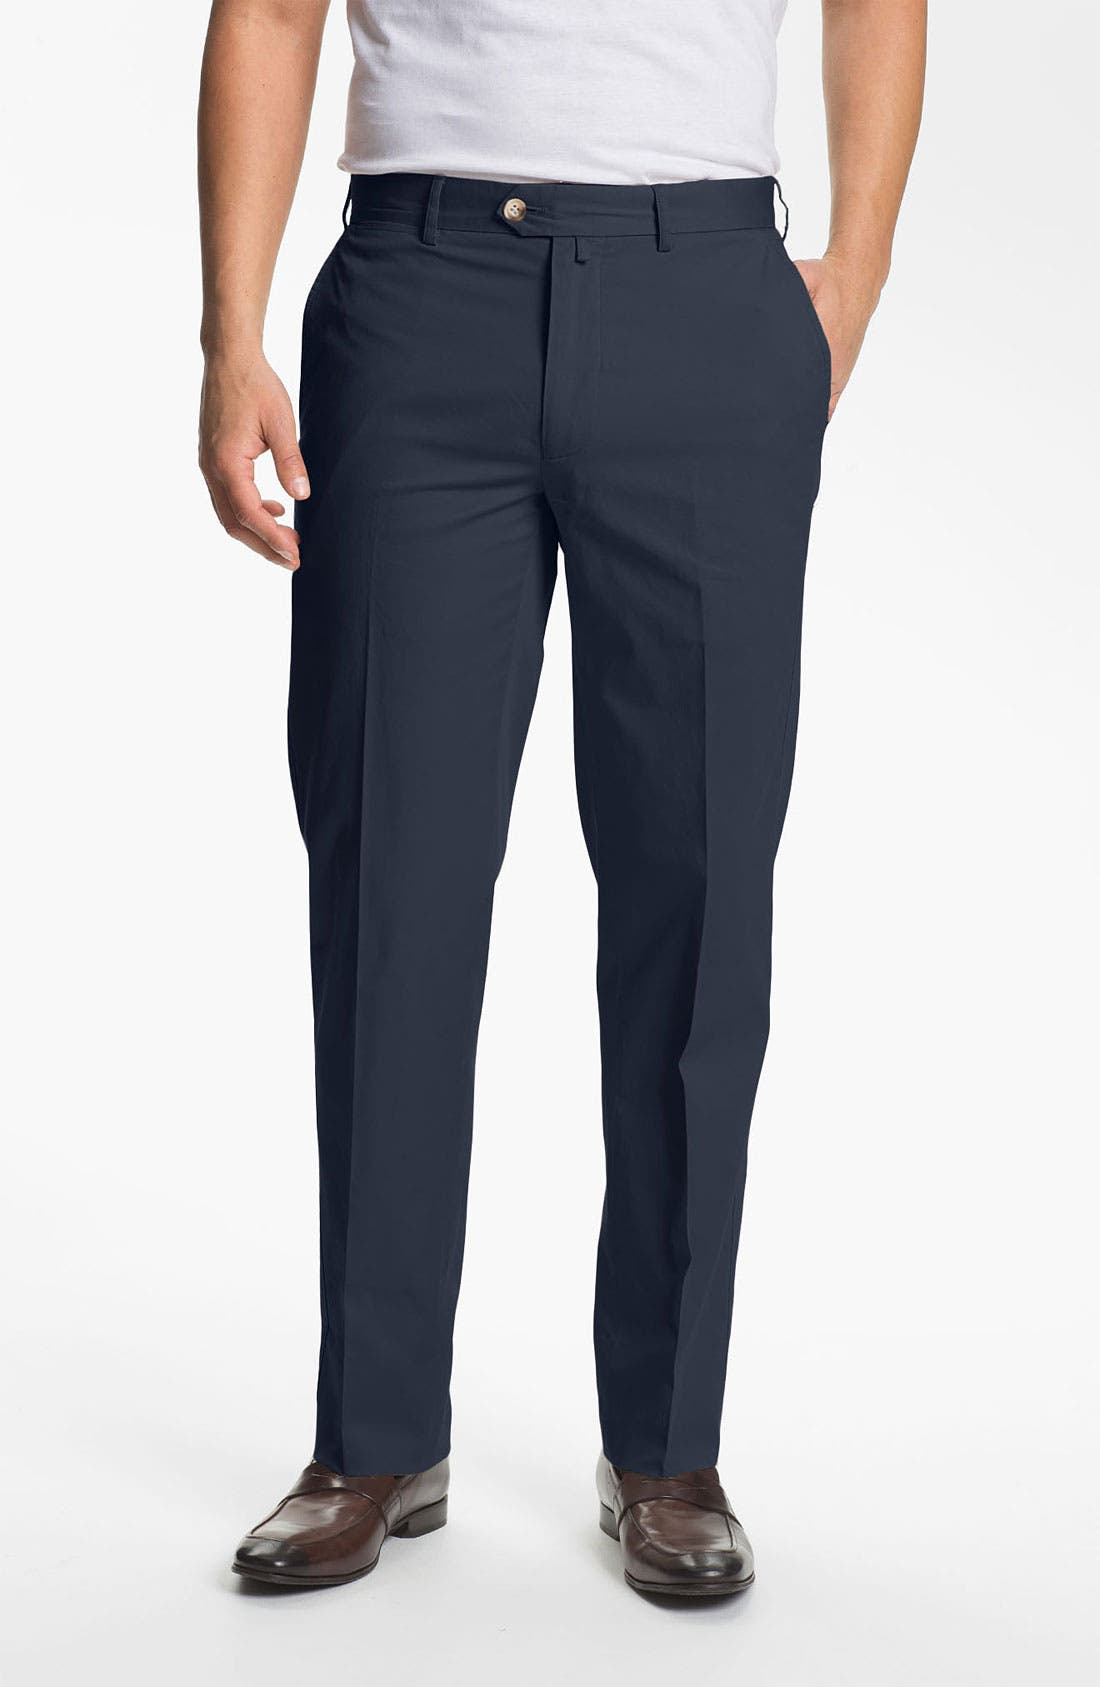 Alternate Image 1 Selected - Façonnable 'Senator' Flat Front Pants